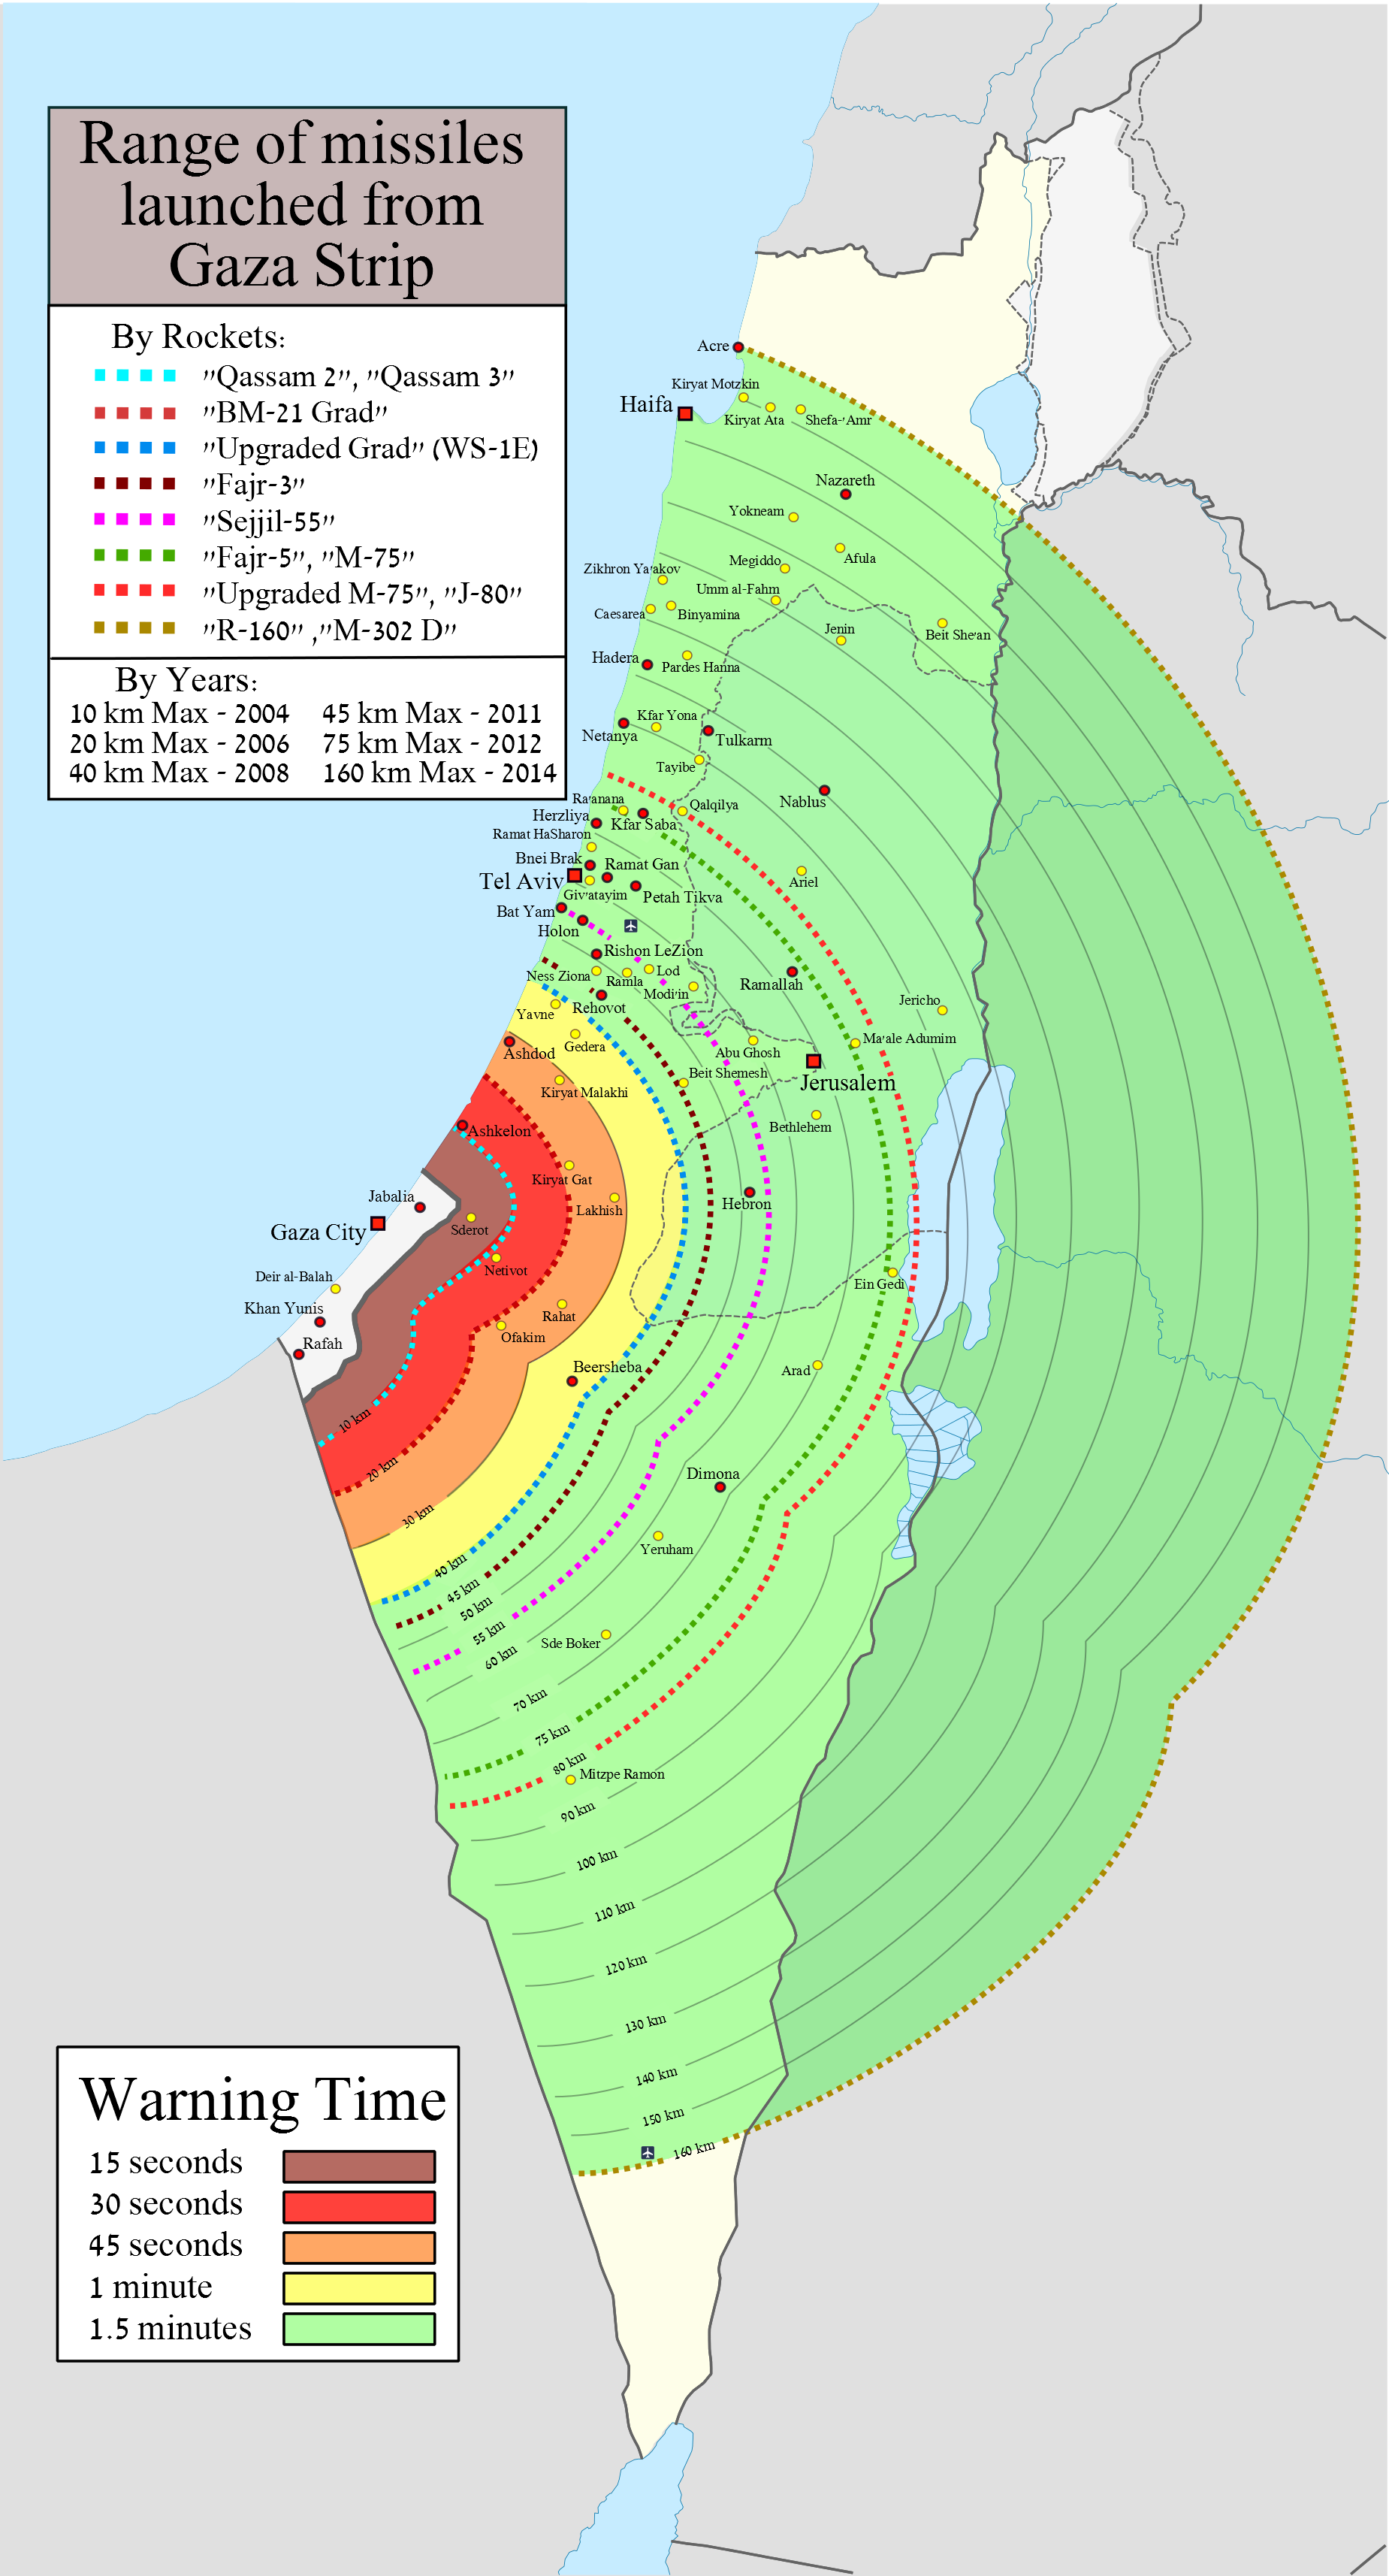 Range of missiles launched from Gaza Strip History Pinterest